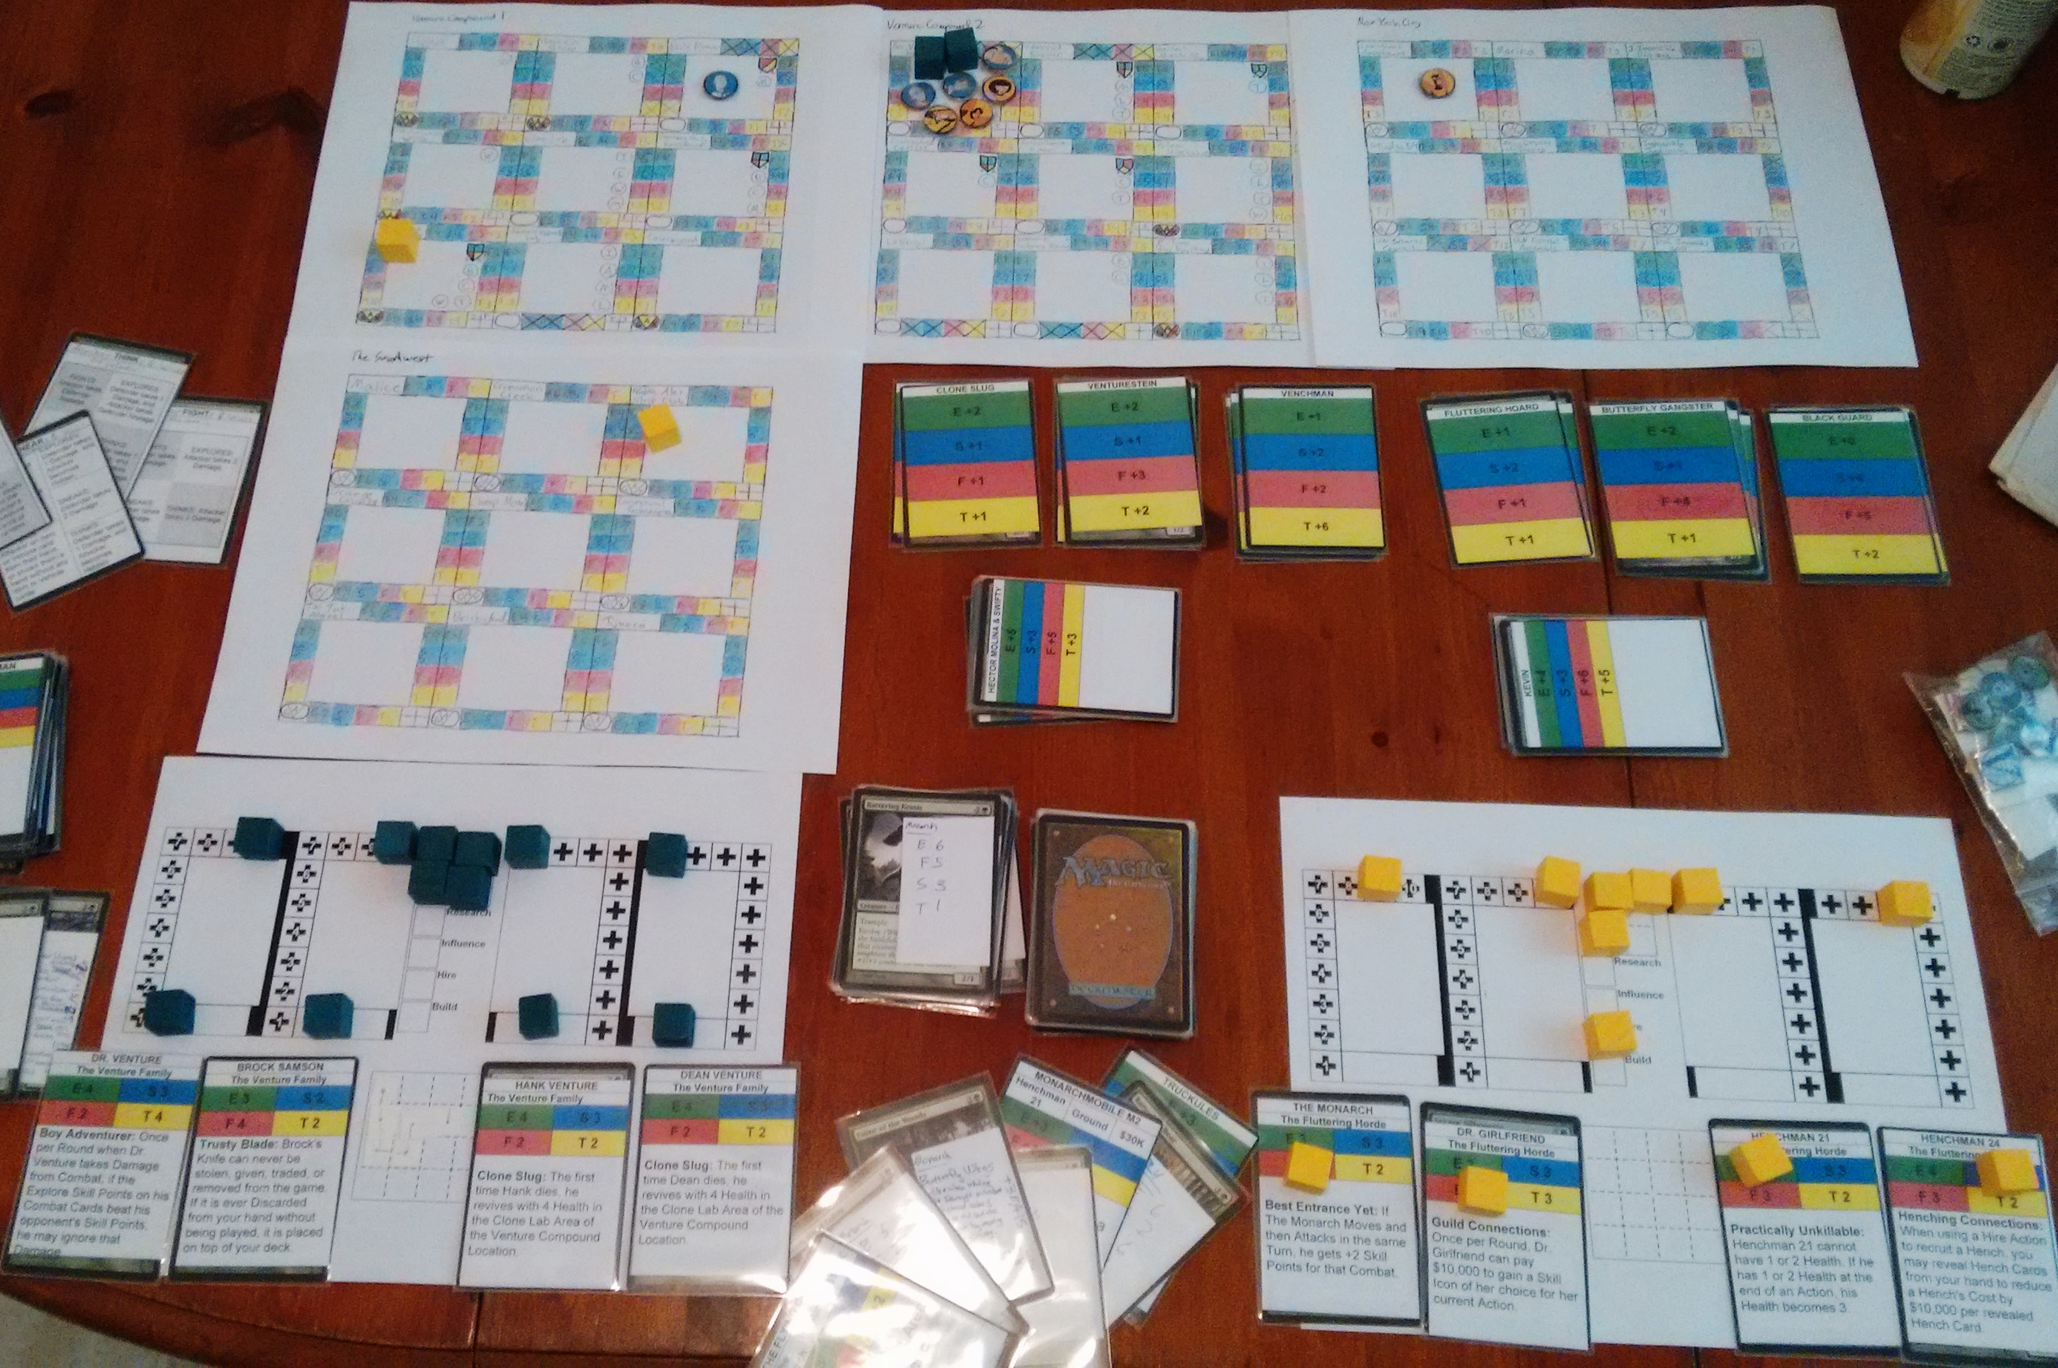 Just testing systems with a mix of many older, and some newer, ideas.